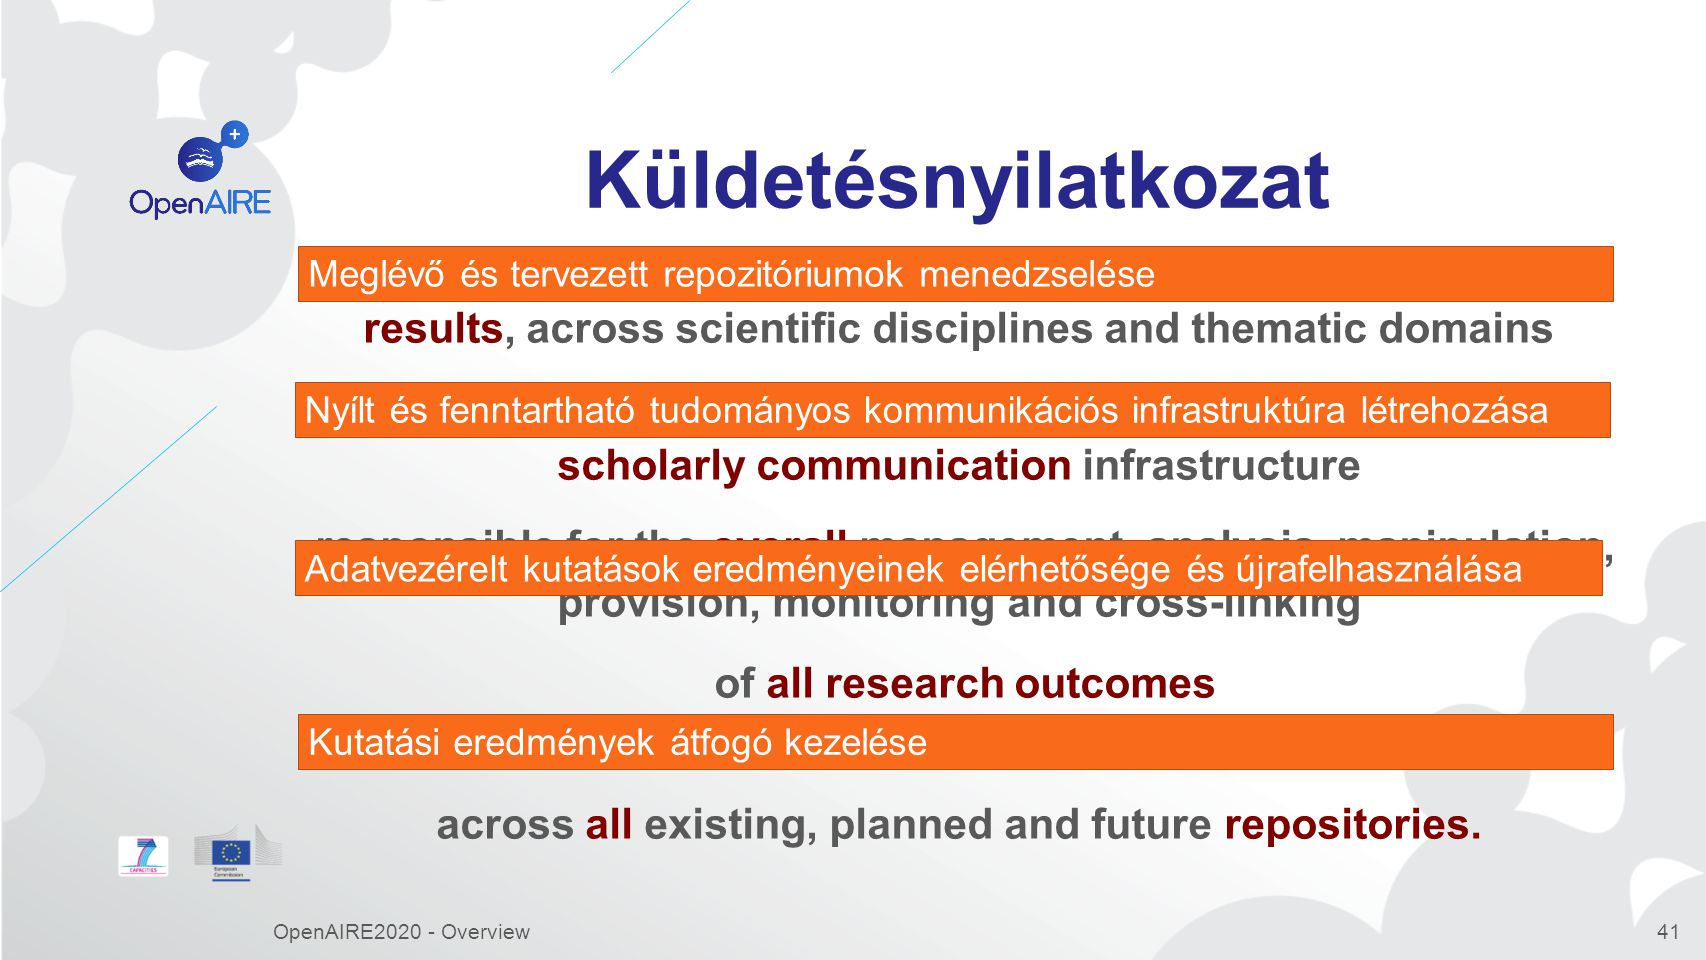 Küldetésnyilatkozat Promote the discoverability and reuse of data-driven research results, across scientific disciplines and thematic domains by establishing an open and sustainable scholarly communication infrastructure responsible for the overall management, analysis, manipulation, provision, monitoring and cross-linking of all research outcomes (publications, related datasets, software, services, …) across all existing, planned and future repositories.